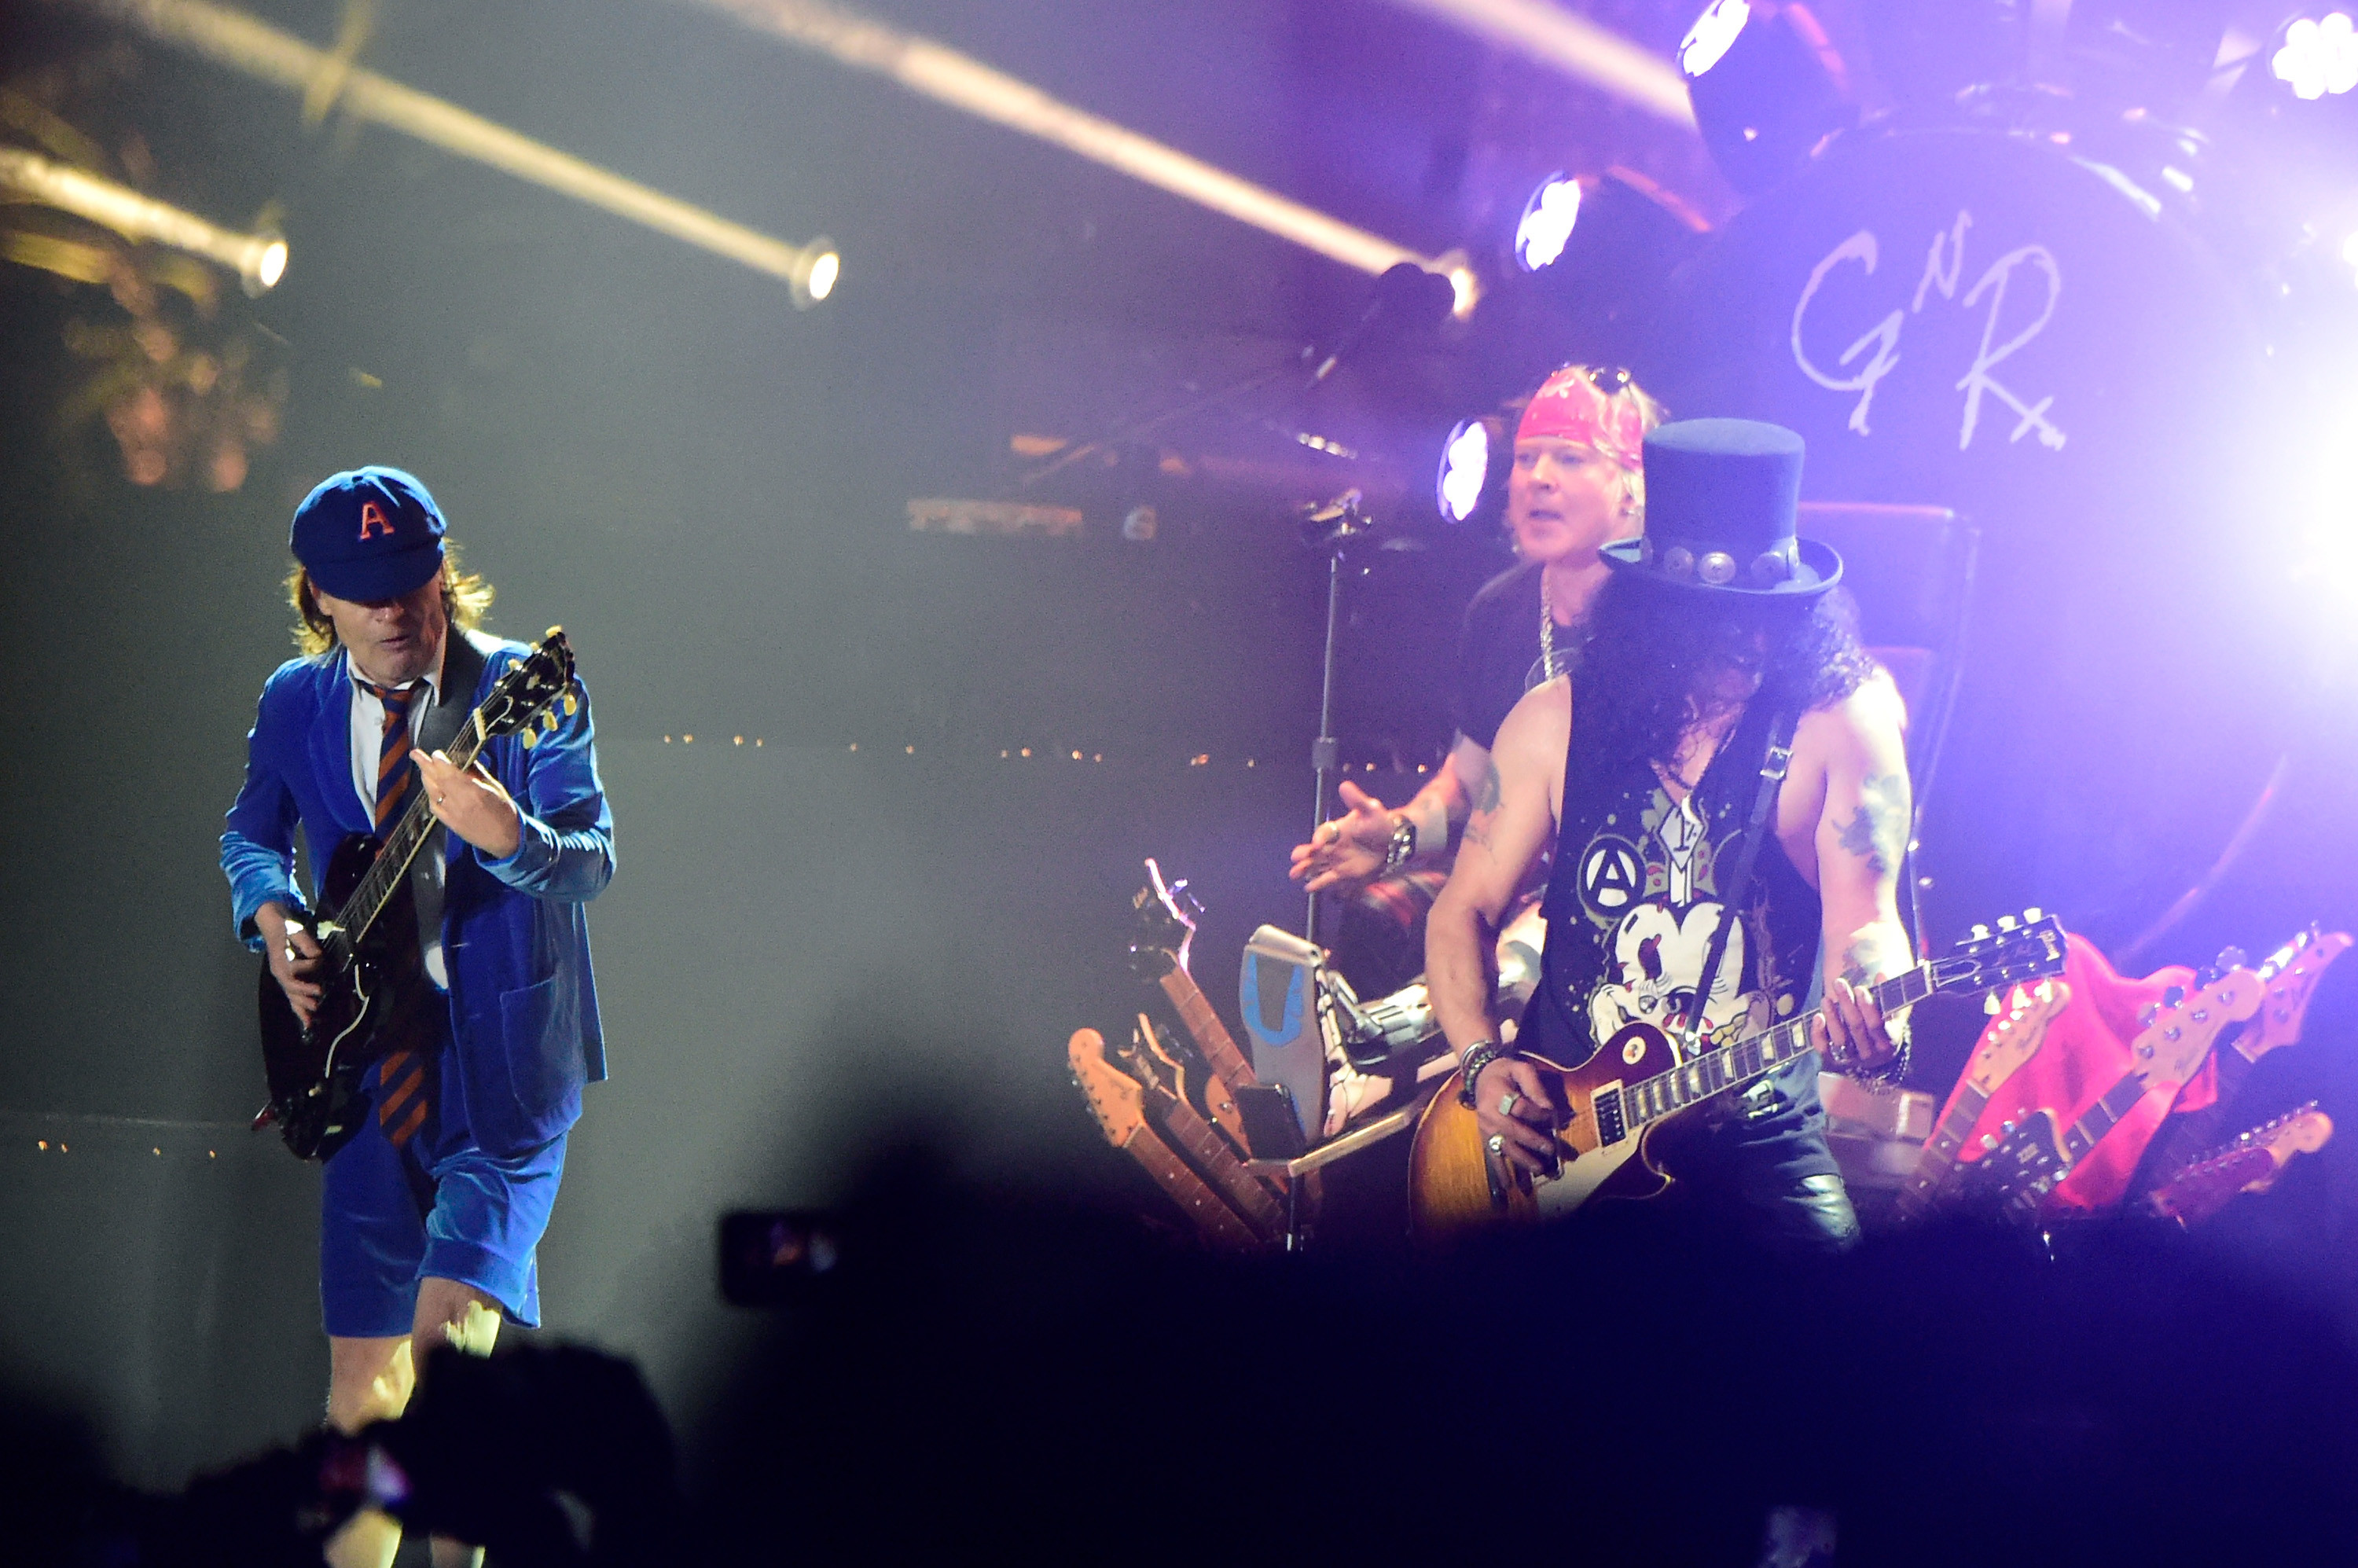 Axl Rose to Replace AC/DC's Lead Singer for Postponed Tour Dates |  Fortune.com